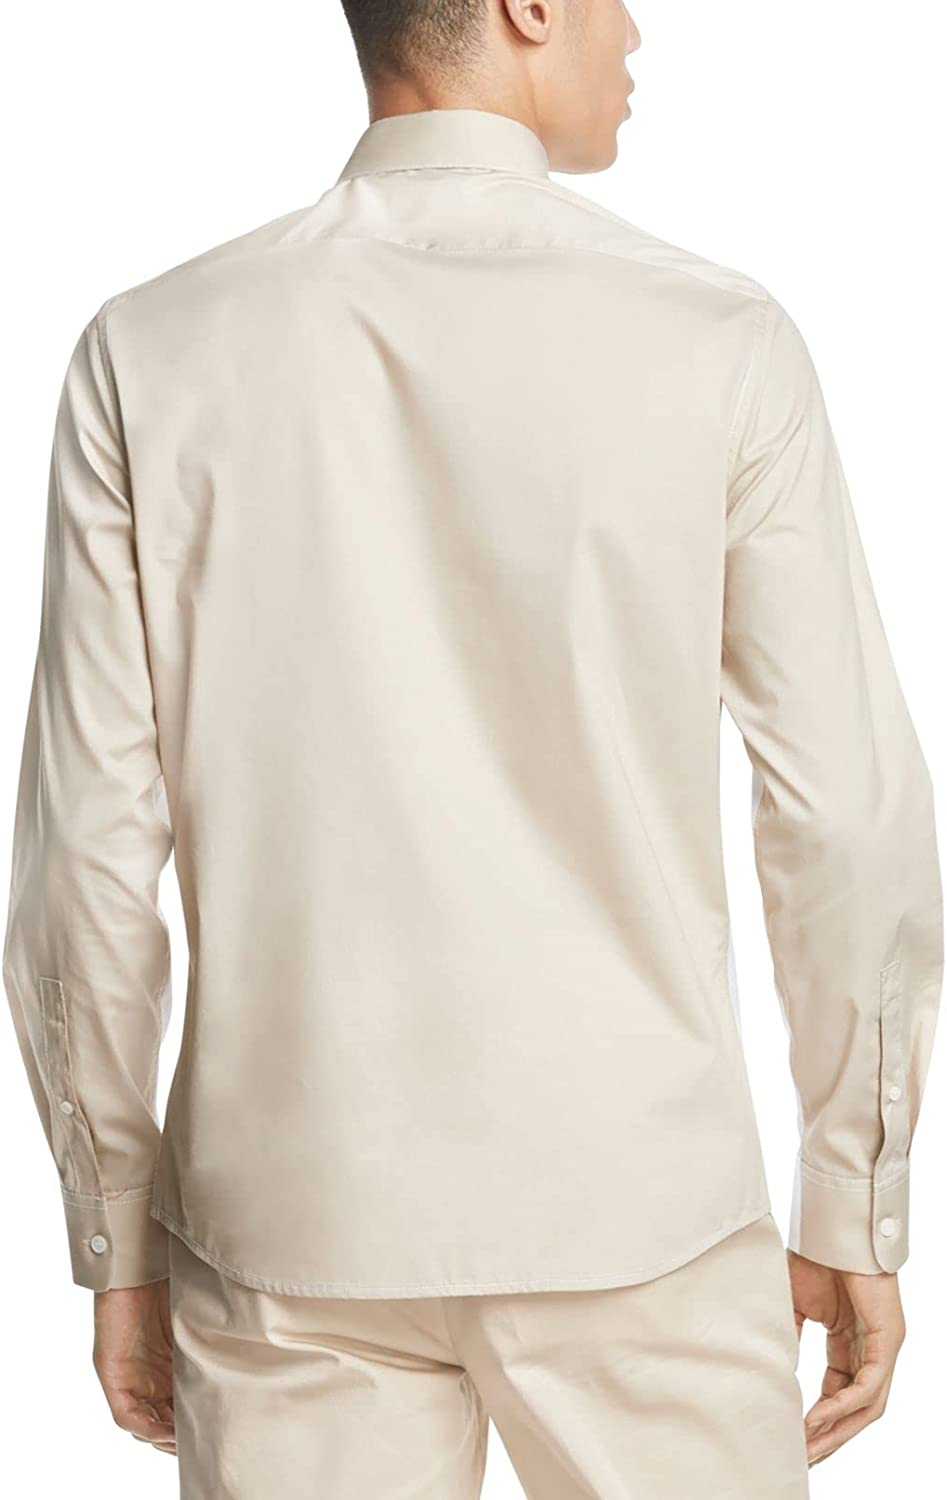 DKNY Mens White Color Block Collared Dress Shirt M